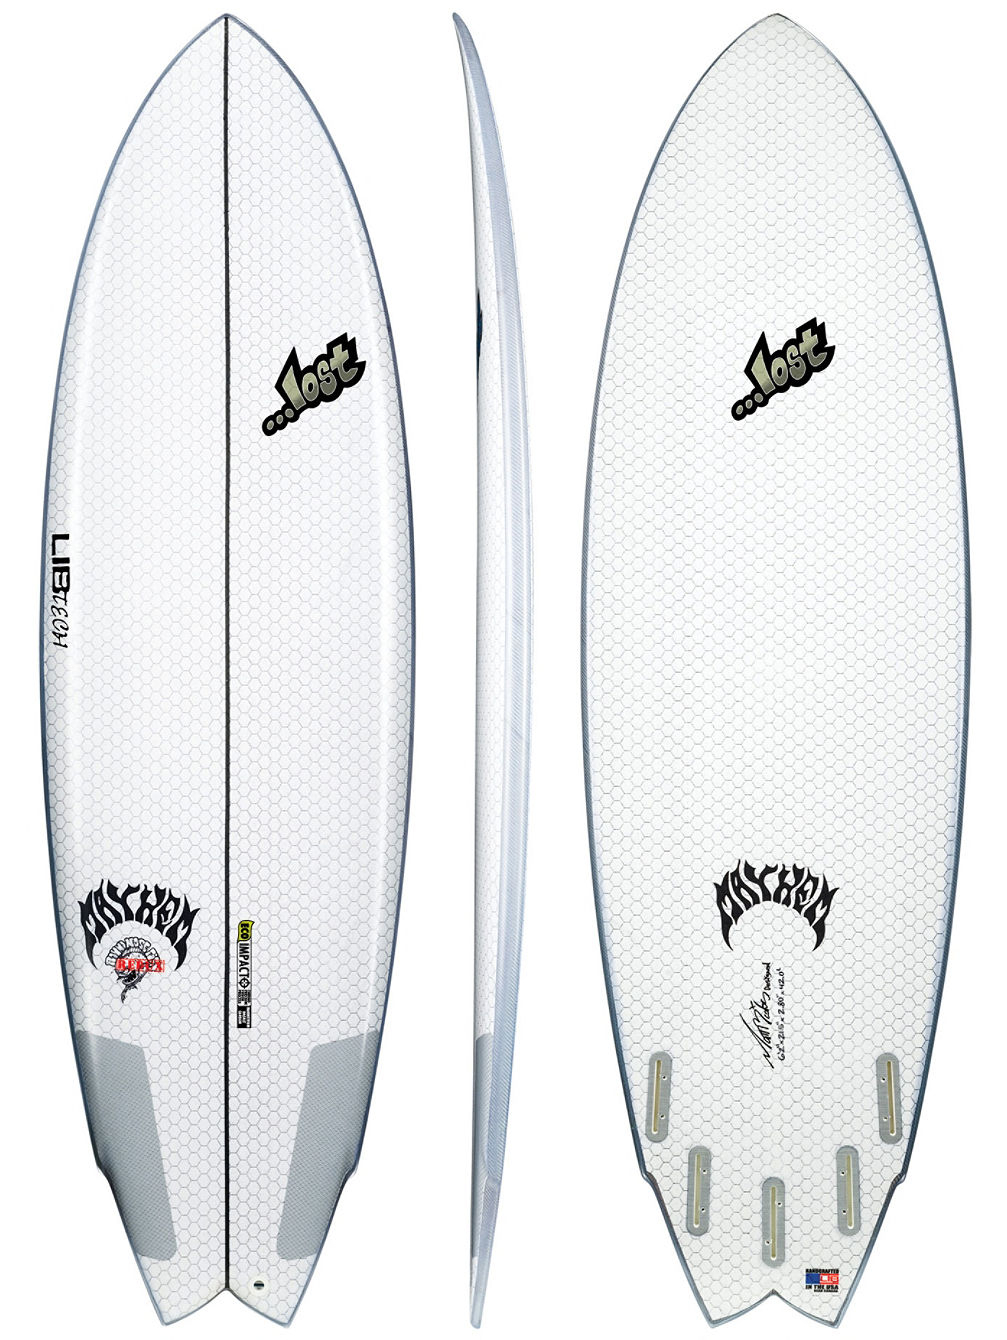 X Lost Round Nose Fish 6'2 Surfboard